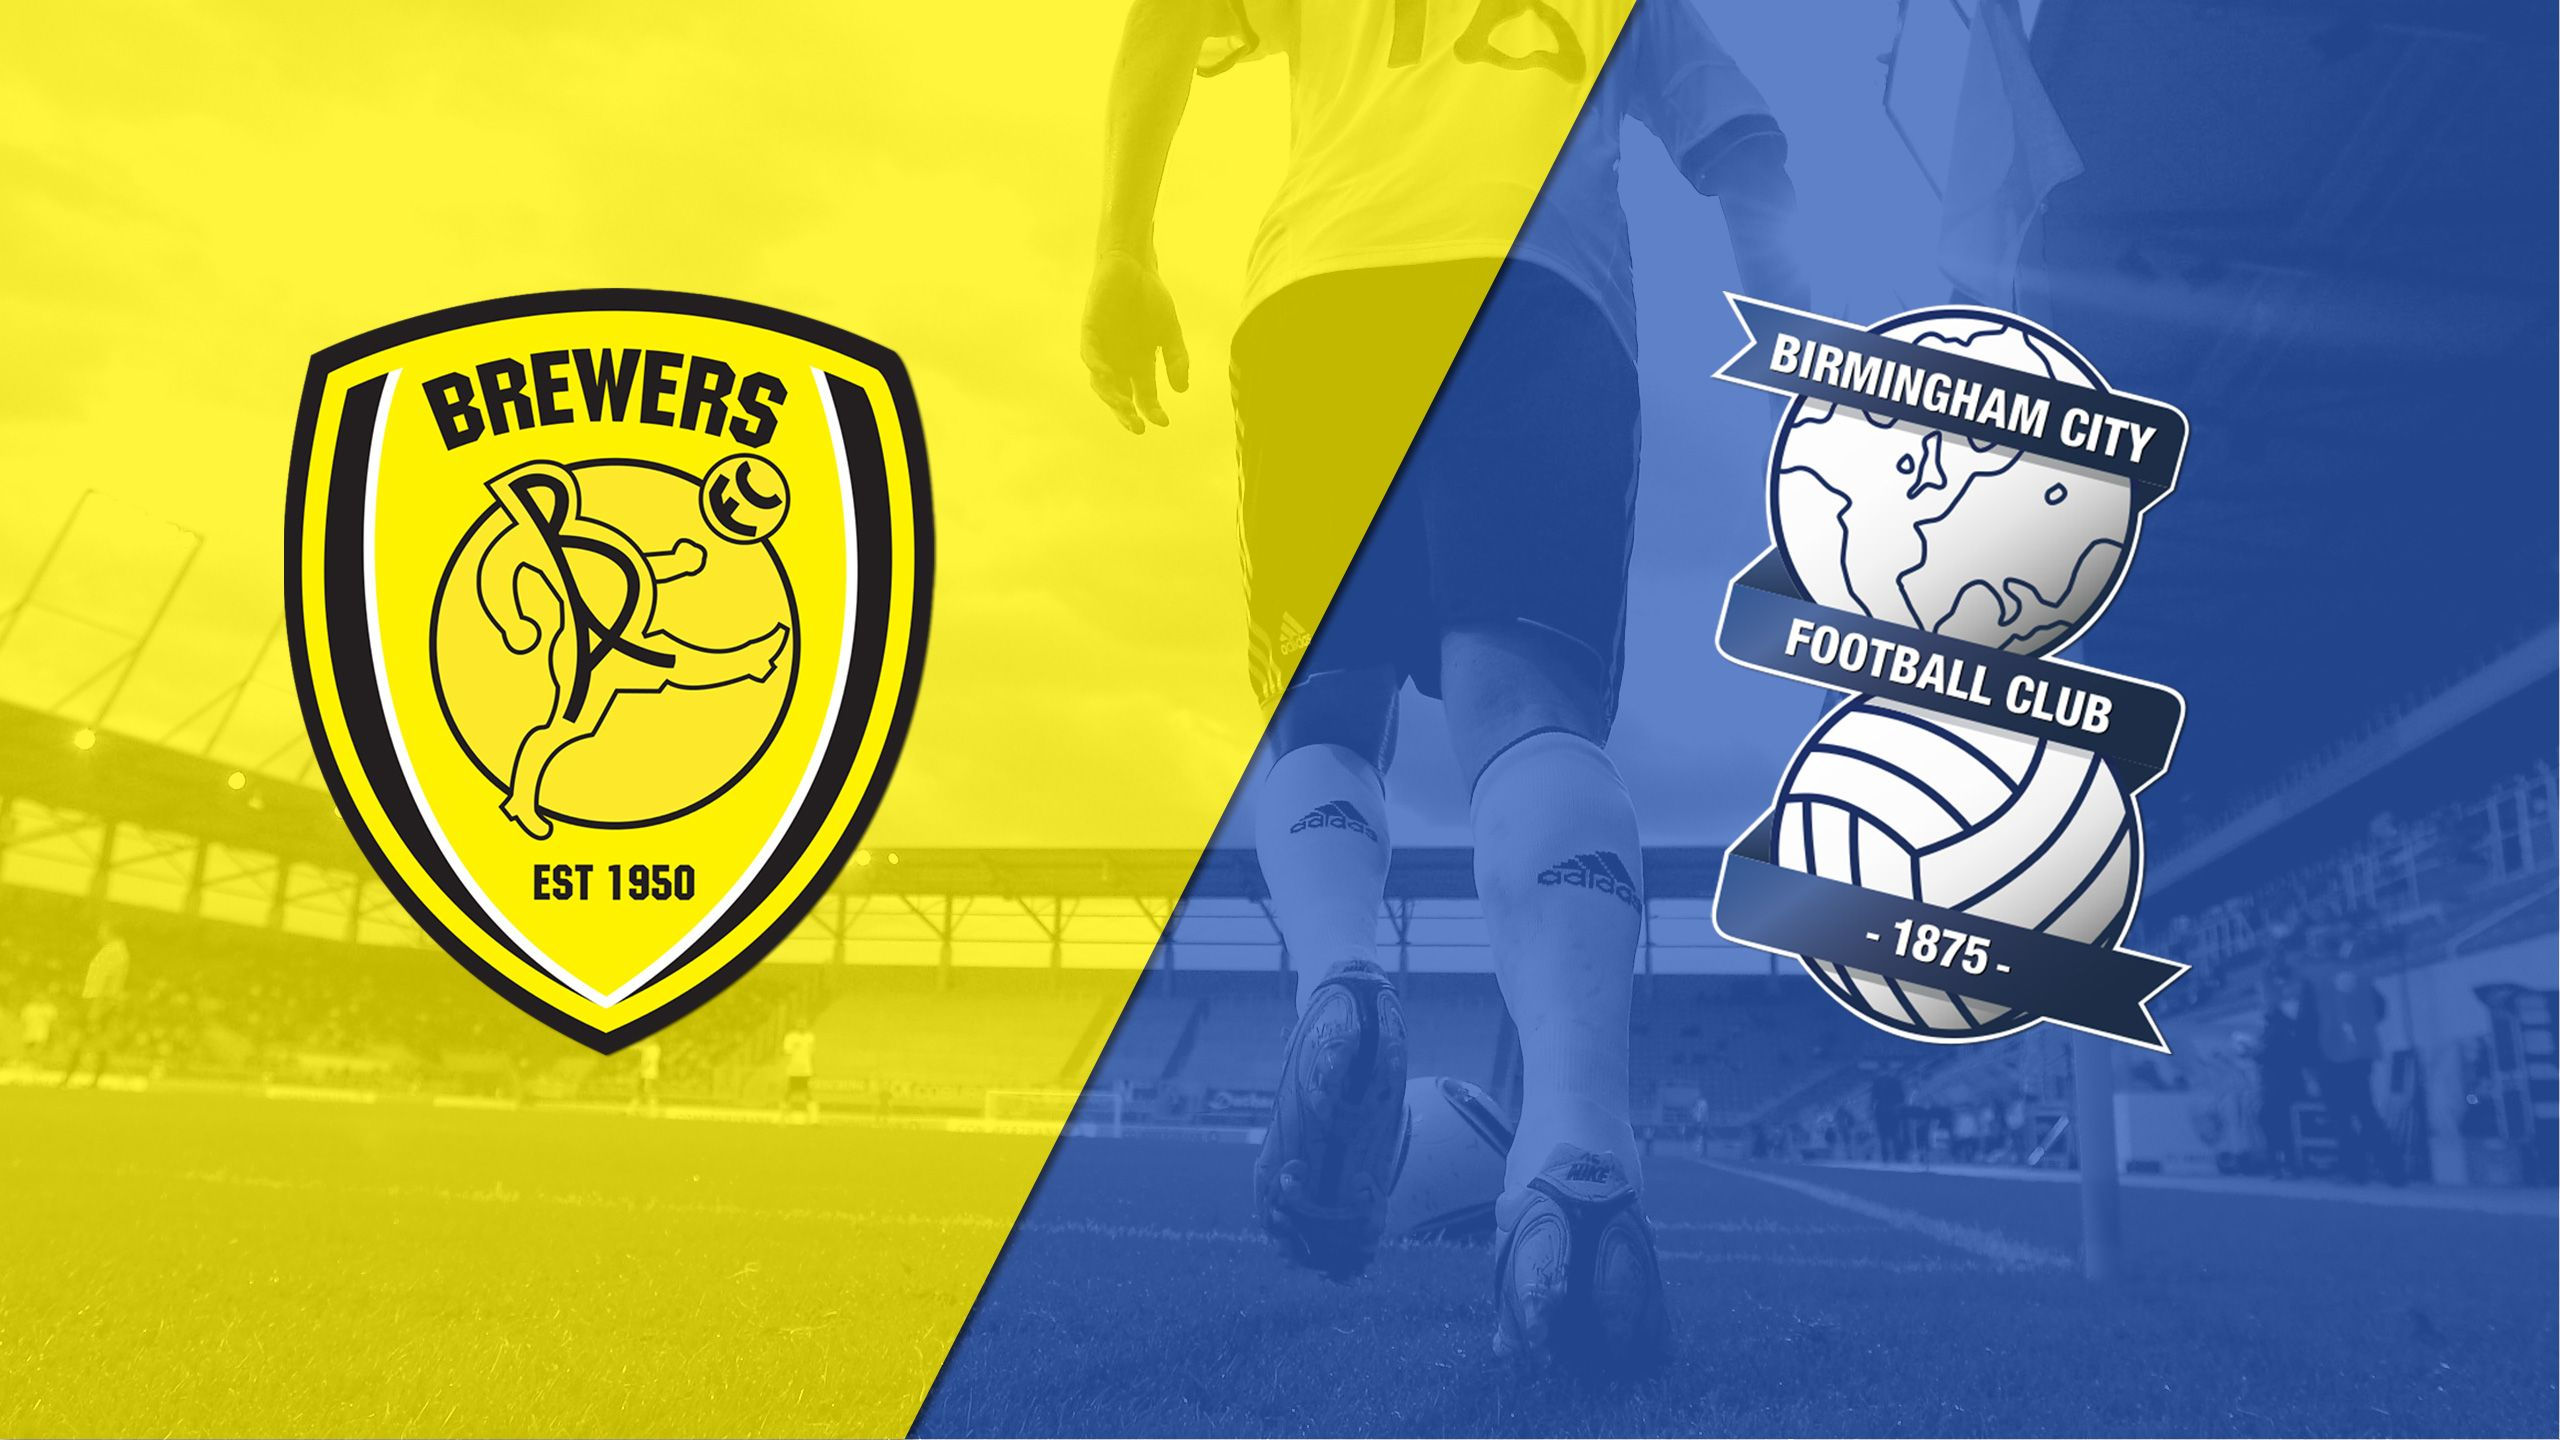 Burton Albion vs. Birmingham City (English League Championship)